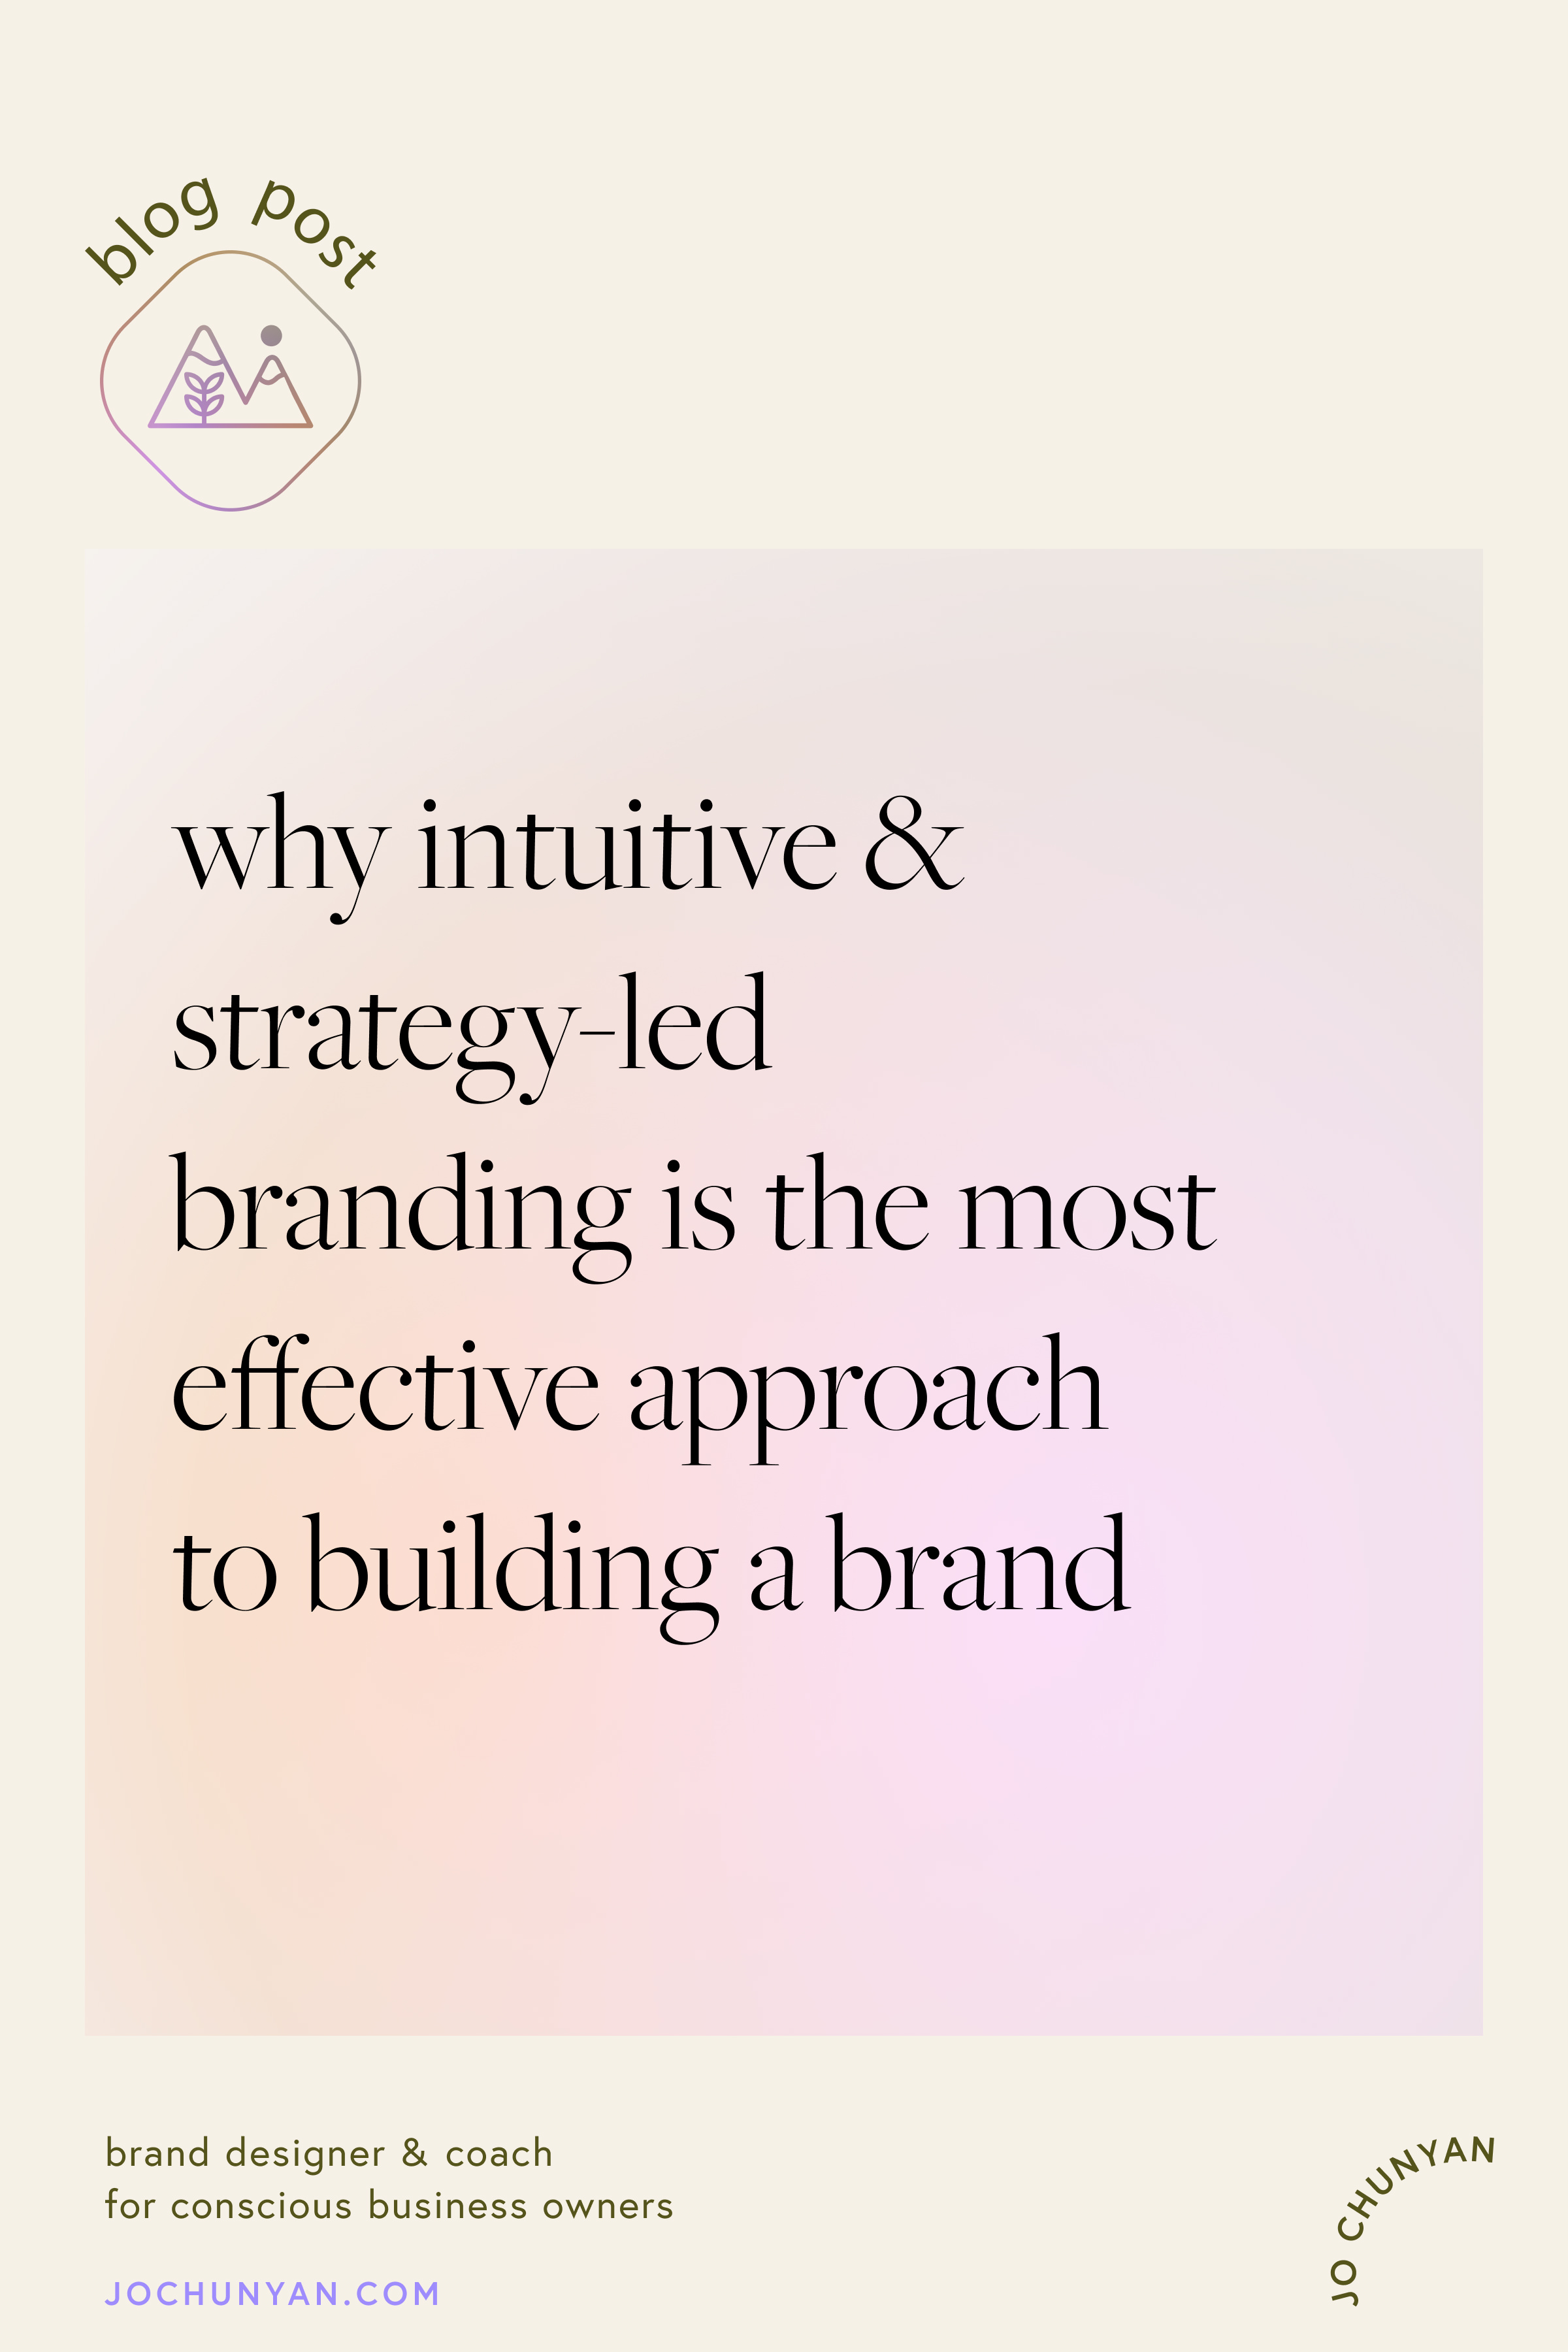 Why Intuitive & strategy-led Branding is the most effective approach to building a brand